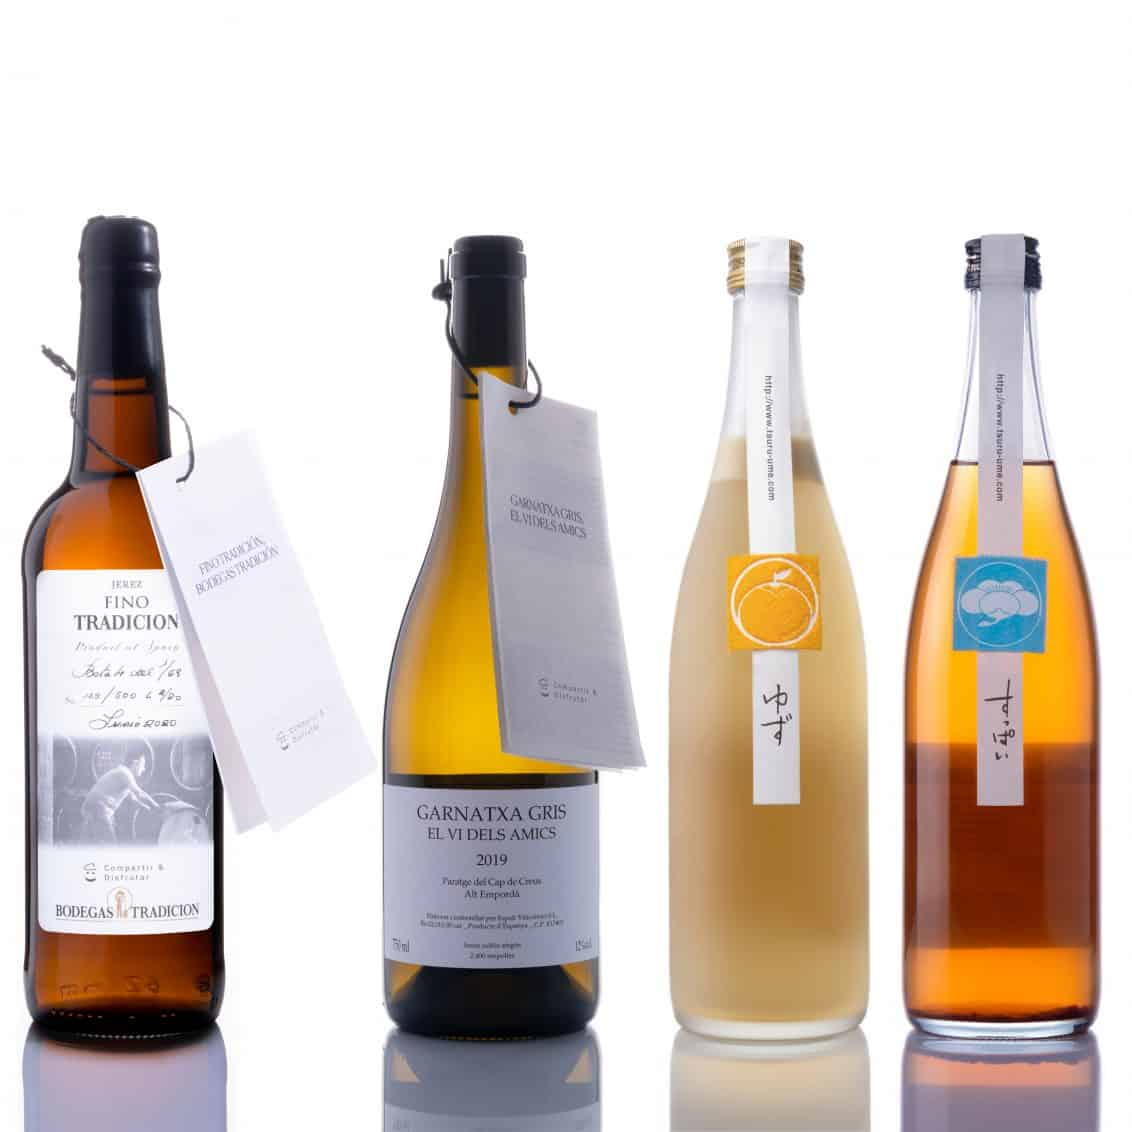 CD-Store-wines-and-sakes-1132x1132